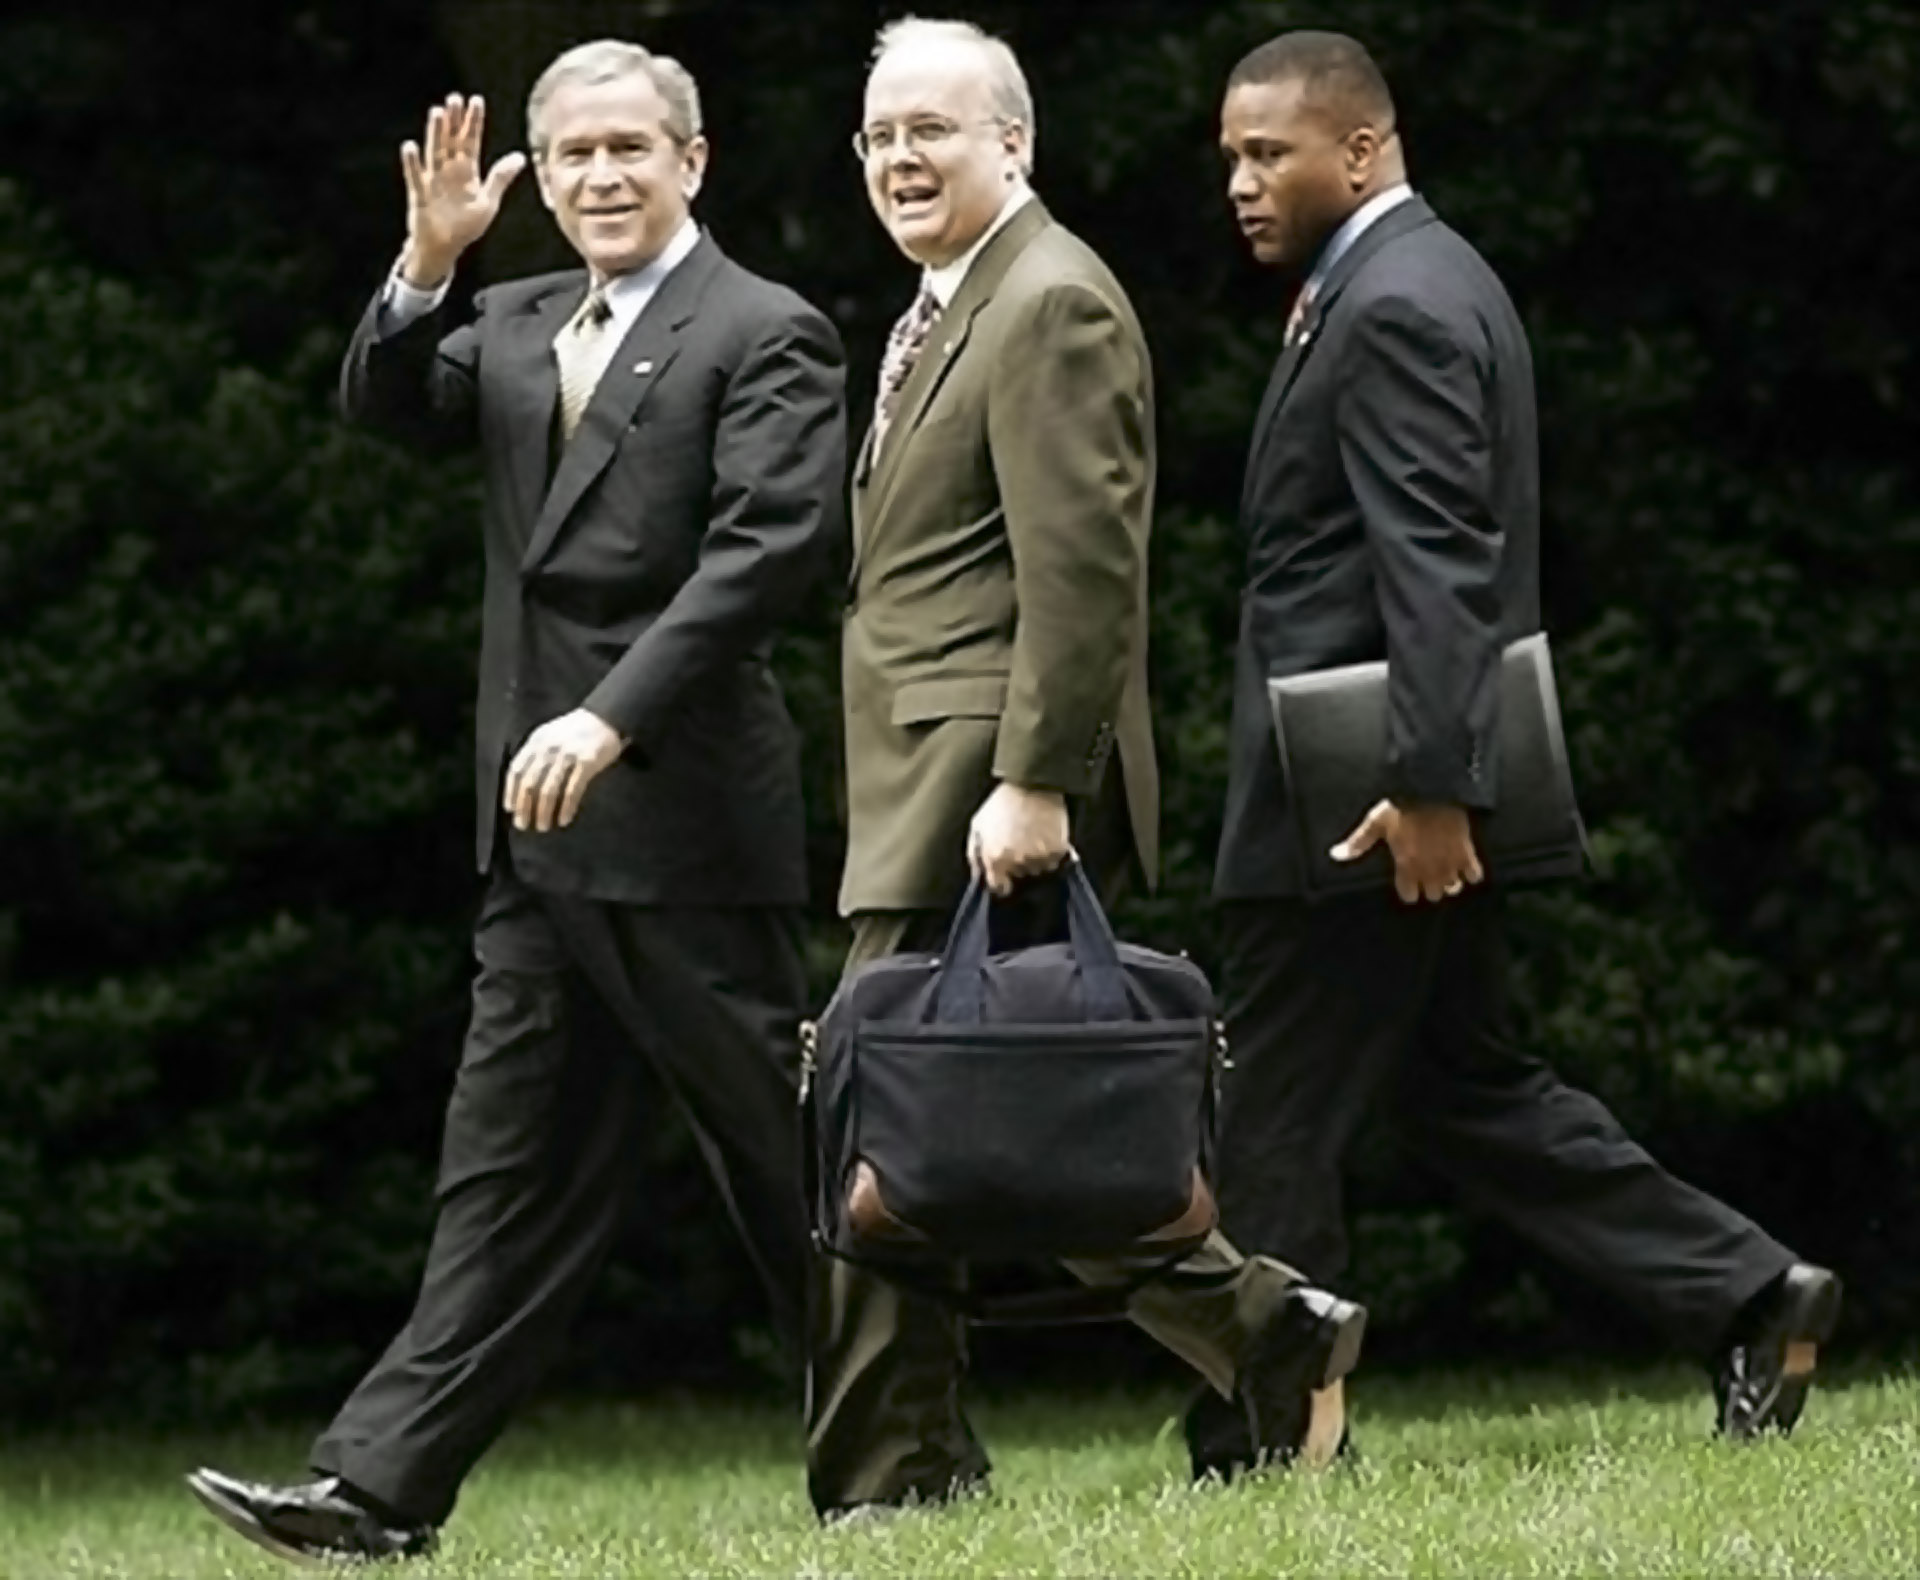 WASHINGTON - JULY 14:  (L-R) U.S. President George W. Bush, Deputy Chief of Staff Karl Rove, and Assistant to the President for Domestic Policy Claude Allen walk from the Oval Office across the South Lawn of the White House toward Marine OneJuly 14, 2005 in Washington, DC. Bush is leaving to make remarks at the Indiana Black Expo Corporate Luncheon in Indianapolis, Indiana. (Photo by Chip Somodevilla/Getty Images)  *** Local Caption *** George W. Bush;Karl Rove;Claude Allen